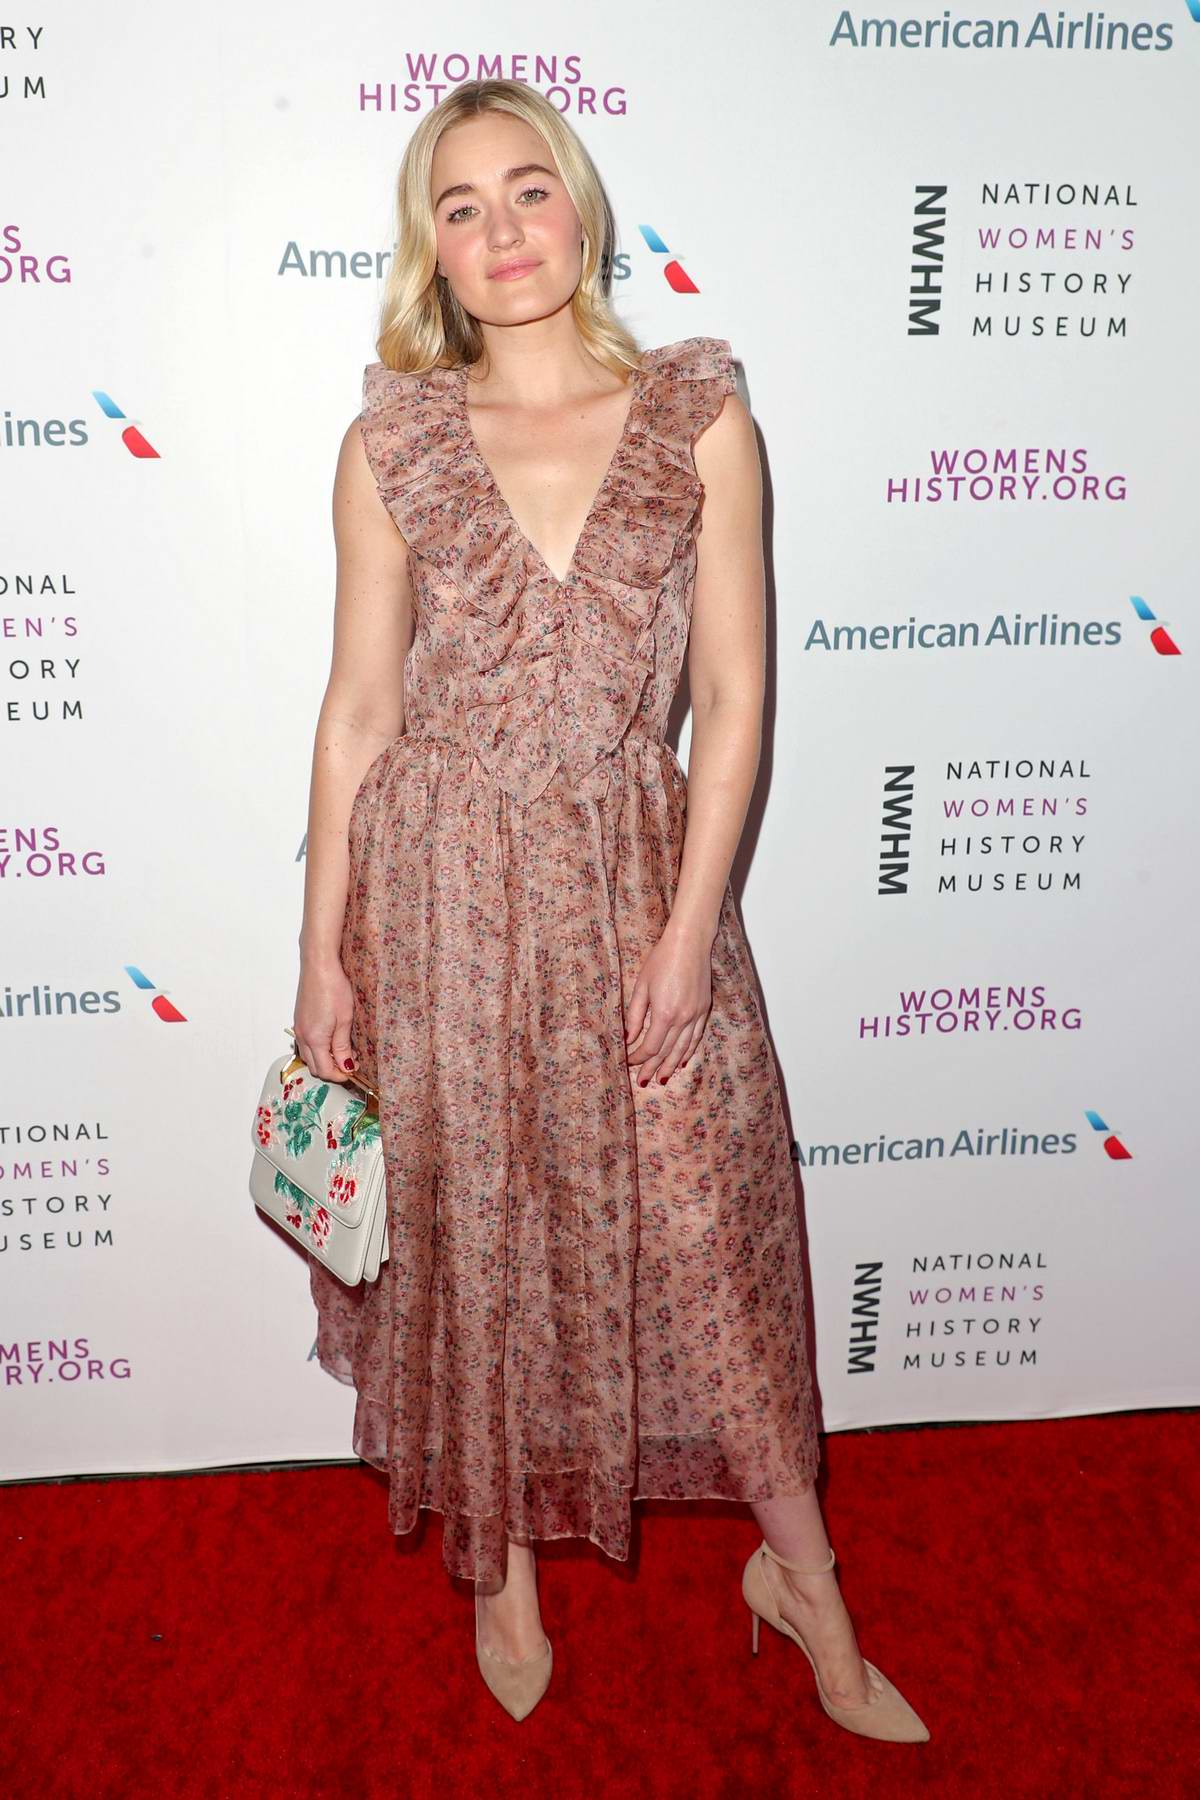 AJ Michalka attends the National Women's History Museum Women Making History Awards in Los Angeles